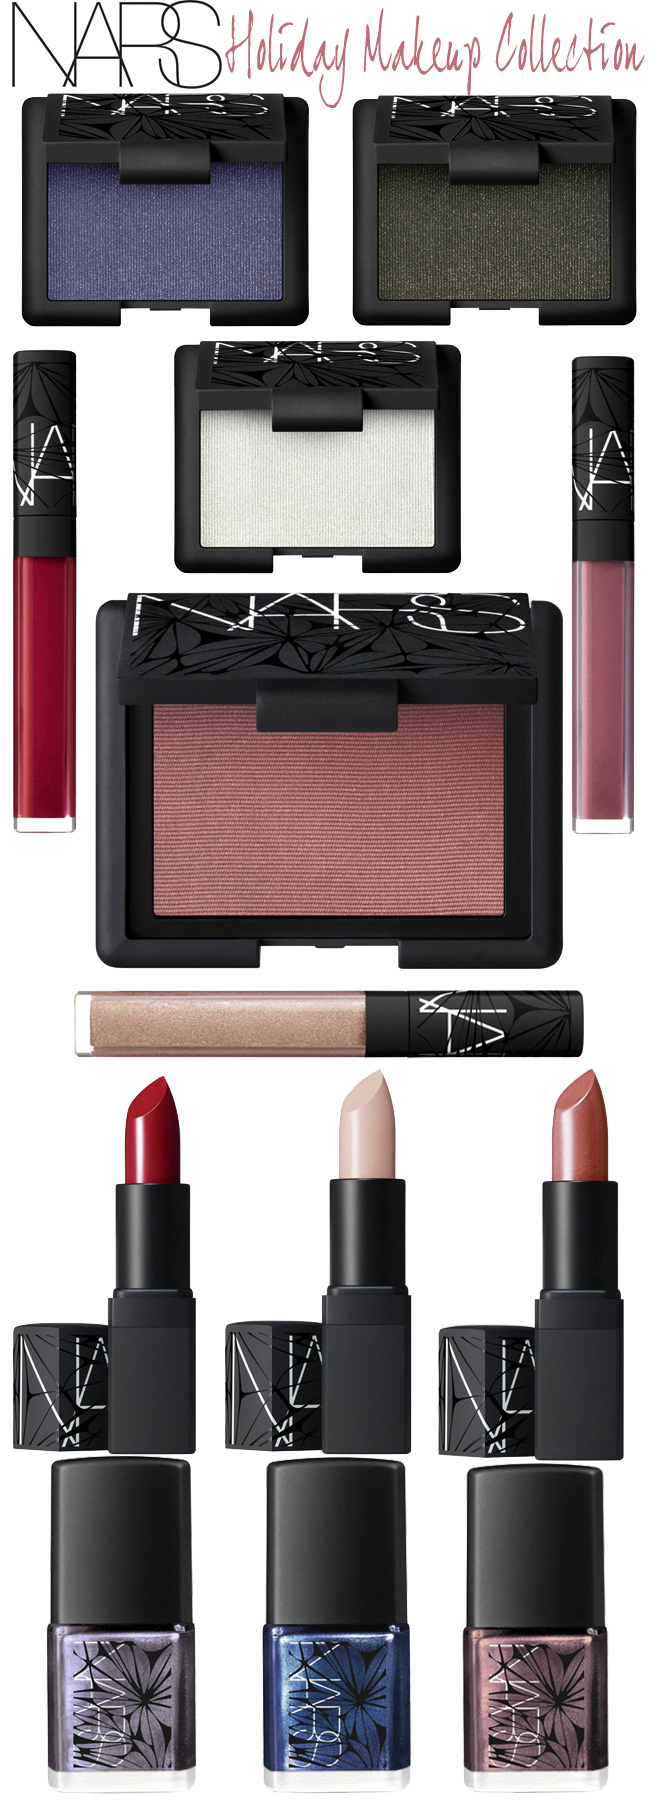 NARS Laced with Edge Holiday Color Collection